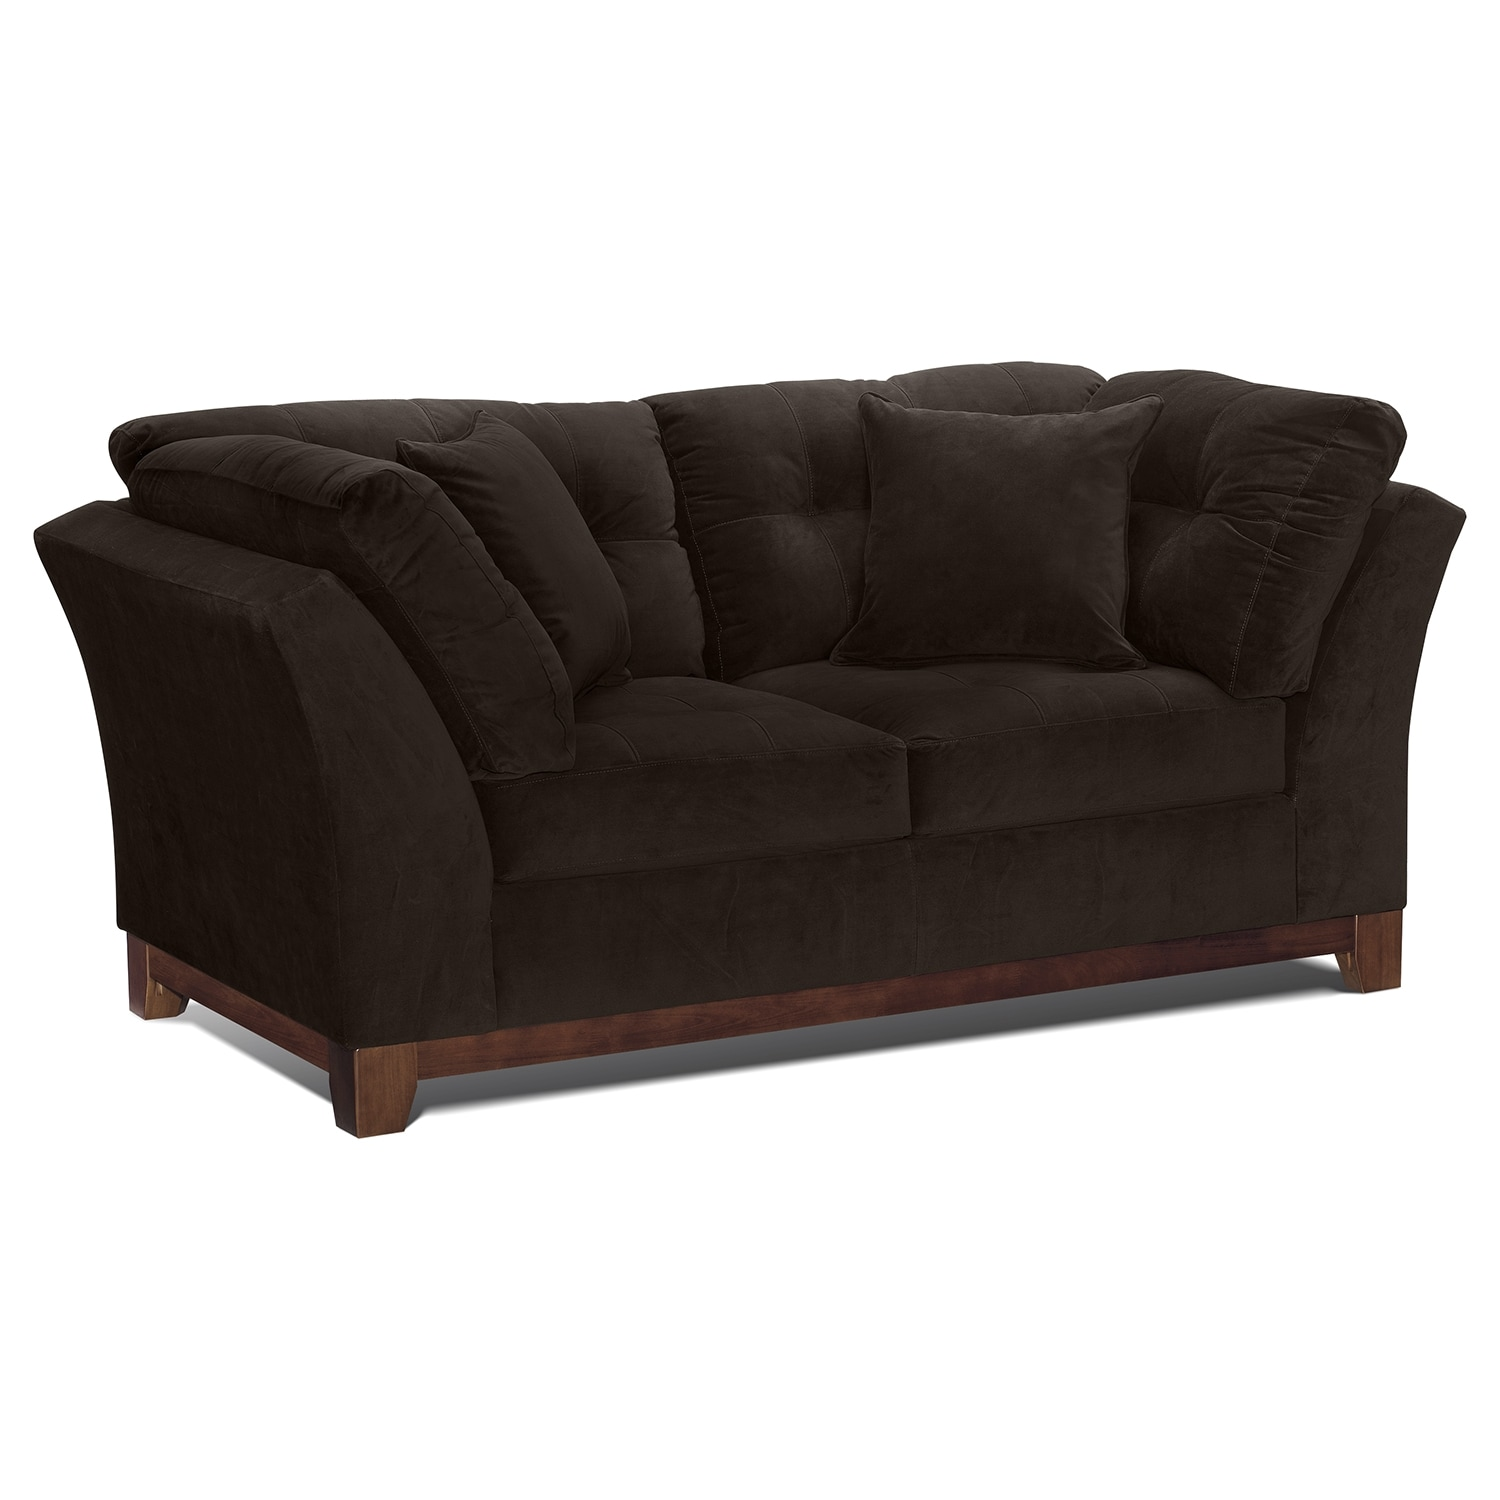 Living Room Furniture - Sebring Loveseat - Chocolate